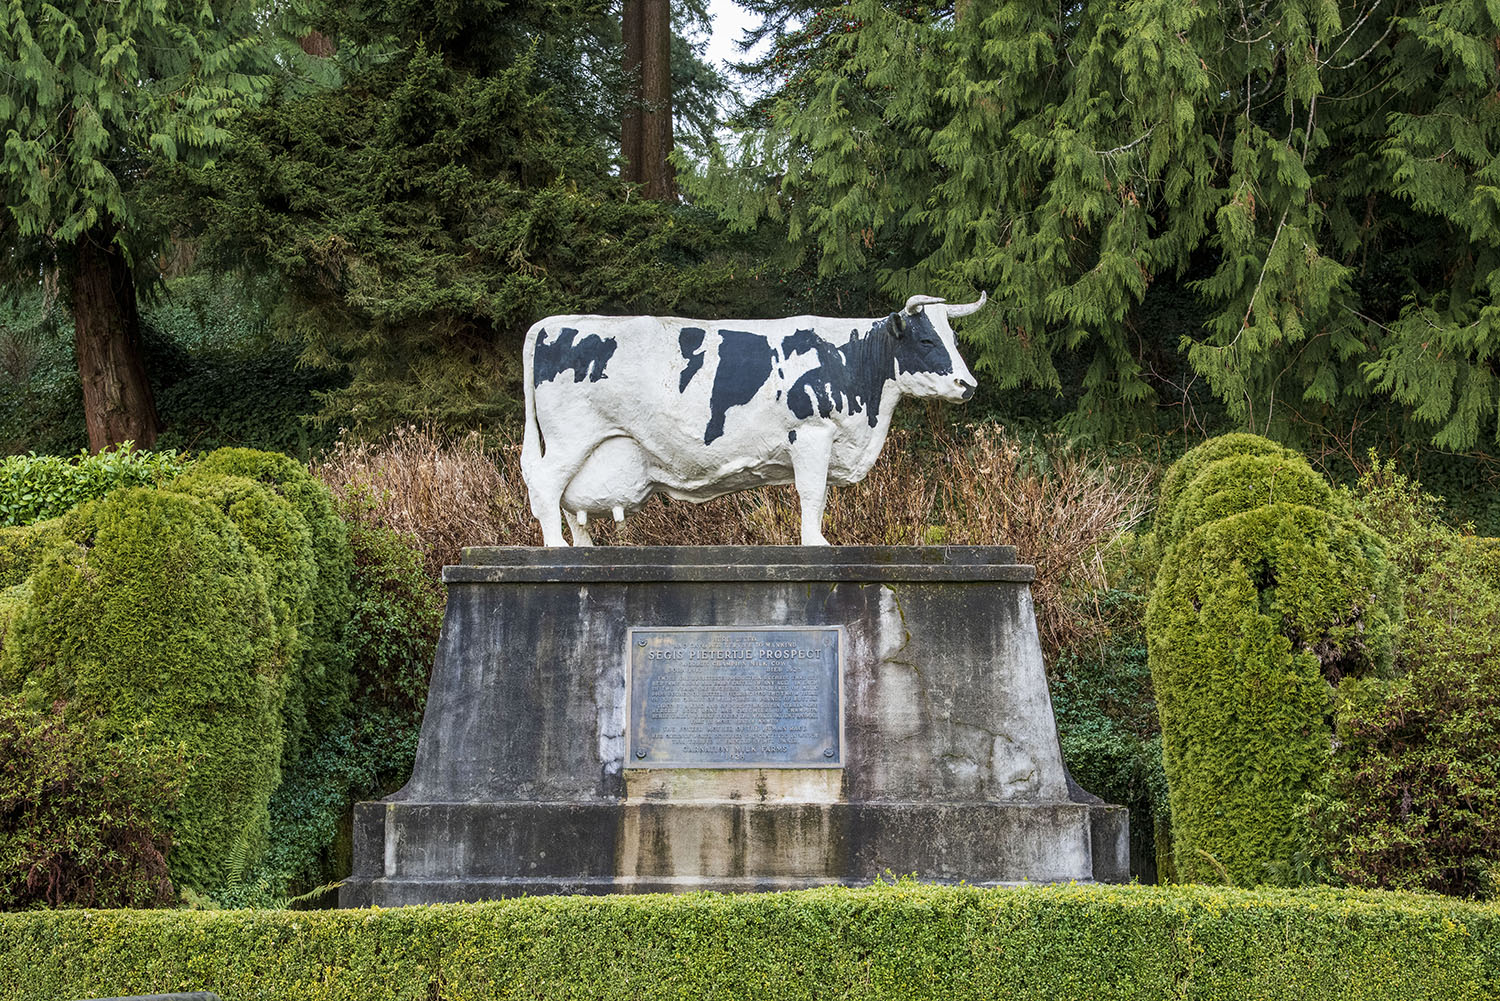 In 1920, the dairy cow and milker pair resulted in a record-breaking 37,000 pounds of milk produced. Milked six times a day for a whole year, Possum Sweetheart's impressive milk production status made her a farmland celebrity. Her name was printed in newspapers worldwide. (Rachael Jones / Seattle Refined)